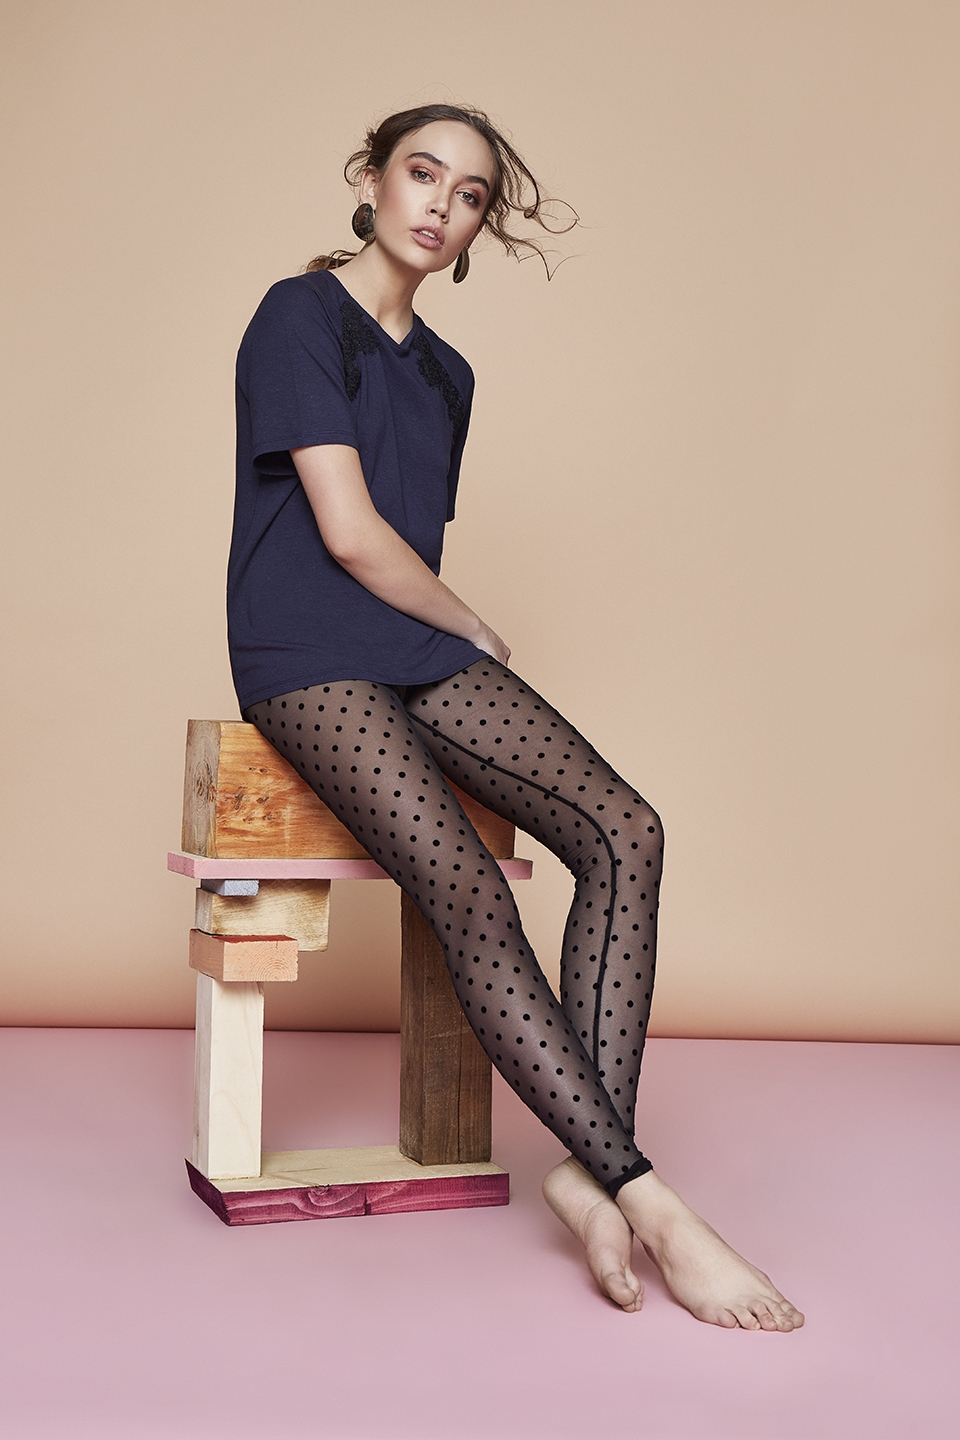 Petals OZ118 T-shirt<br />03 Dark Blue, 15 Beige, 67 Antique Rose<br />Sprinkles OZ138 Leggins